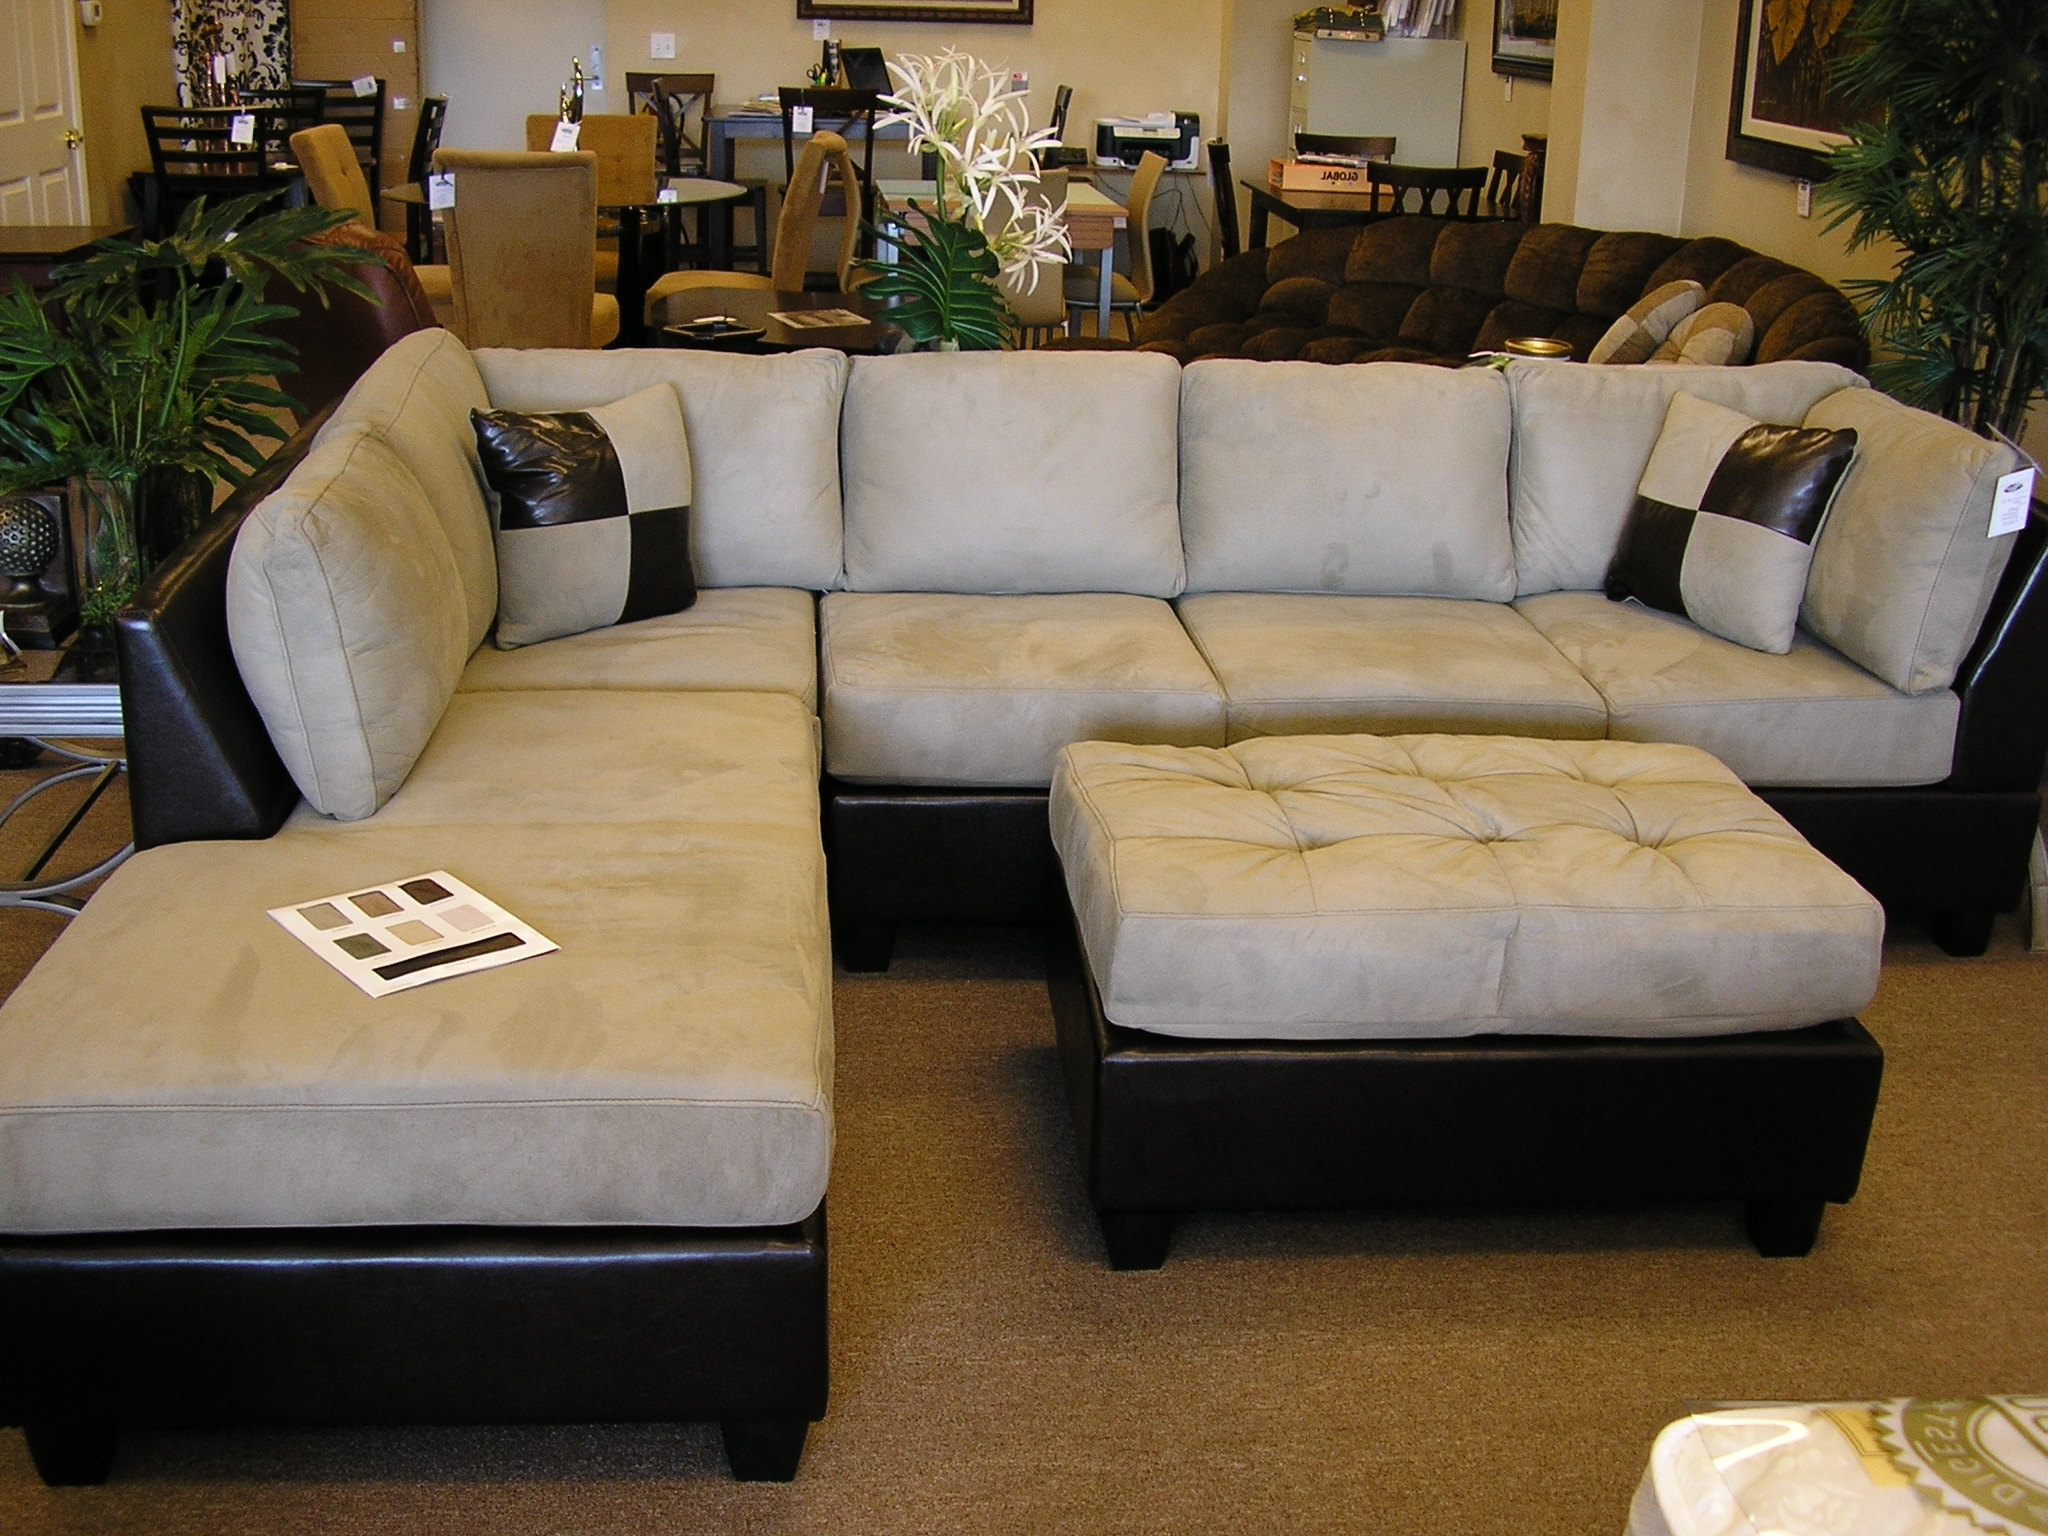 Sectional Sofas With Chaise And Ottoman Pertaining To Well Liked Furniture : Sectional Chaise Lounge Sofa Double Along With (View 14 of 20)